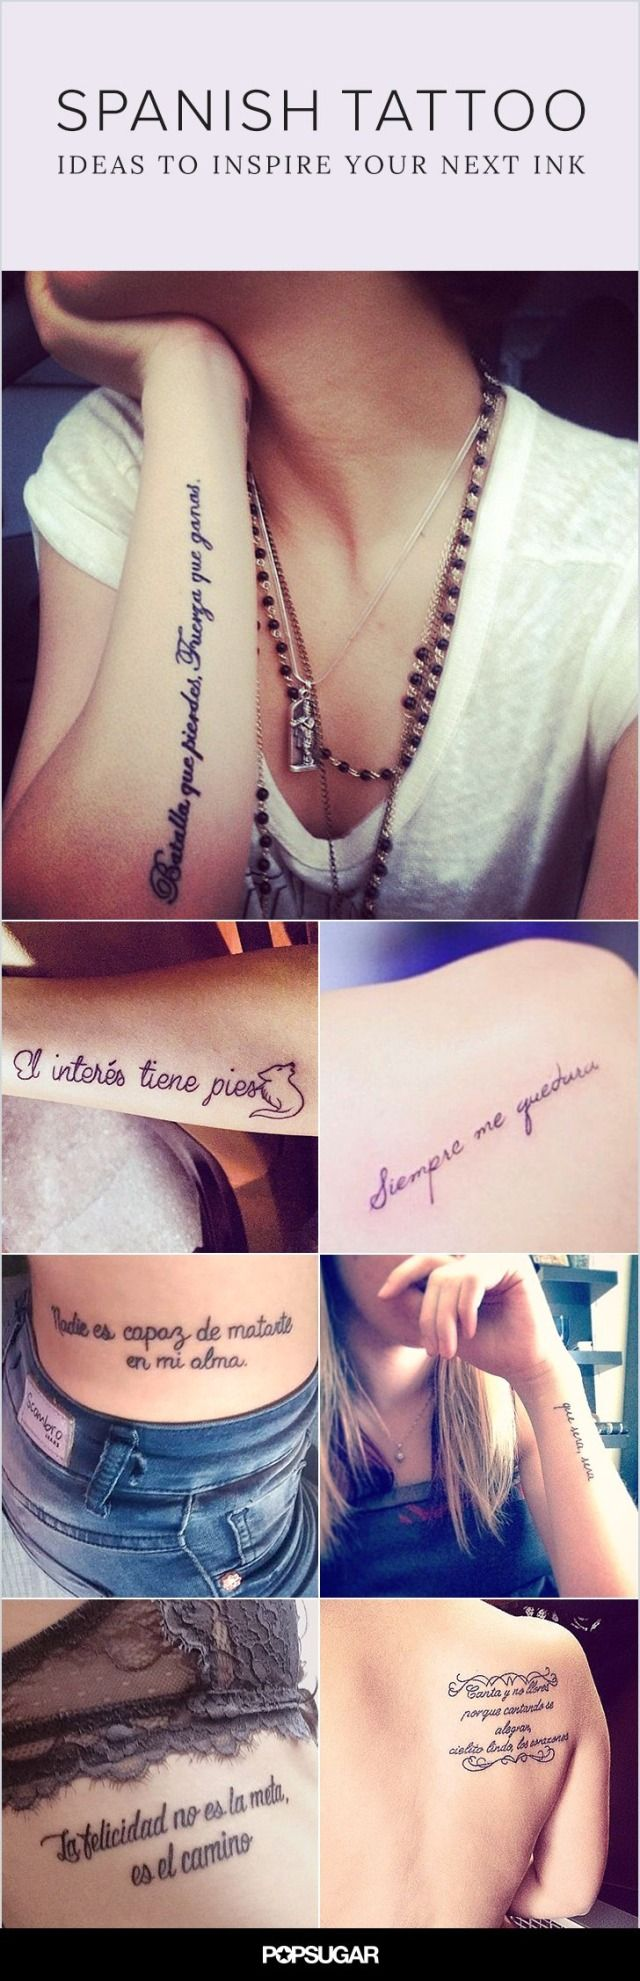 Whether it's a quote to honor your Latin roots or a simple word that speaks to you, a permanent mark in Spanish is just the perfect amount of mysterious and meaningful.